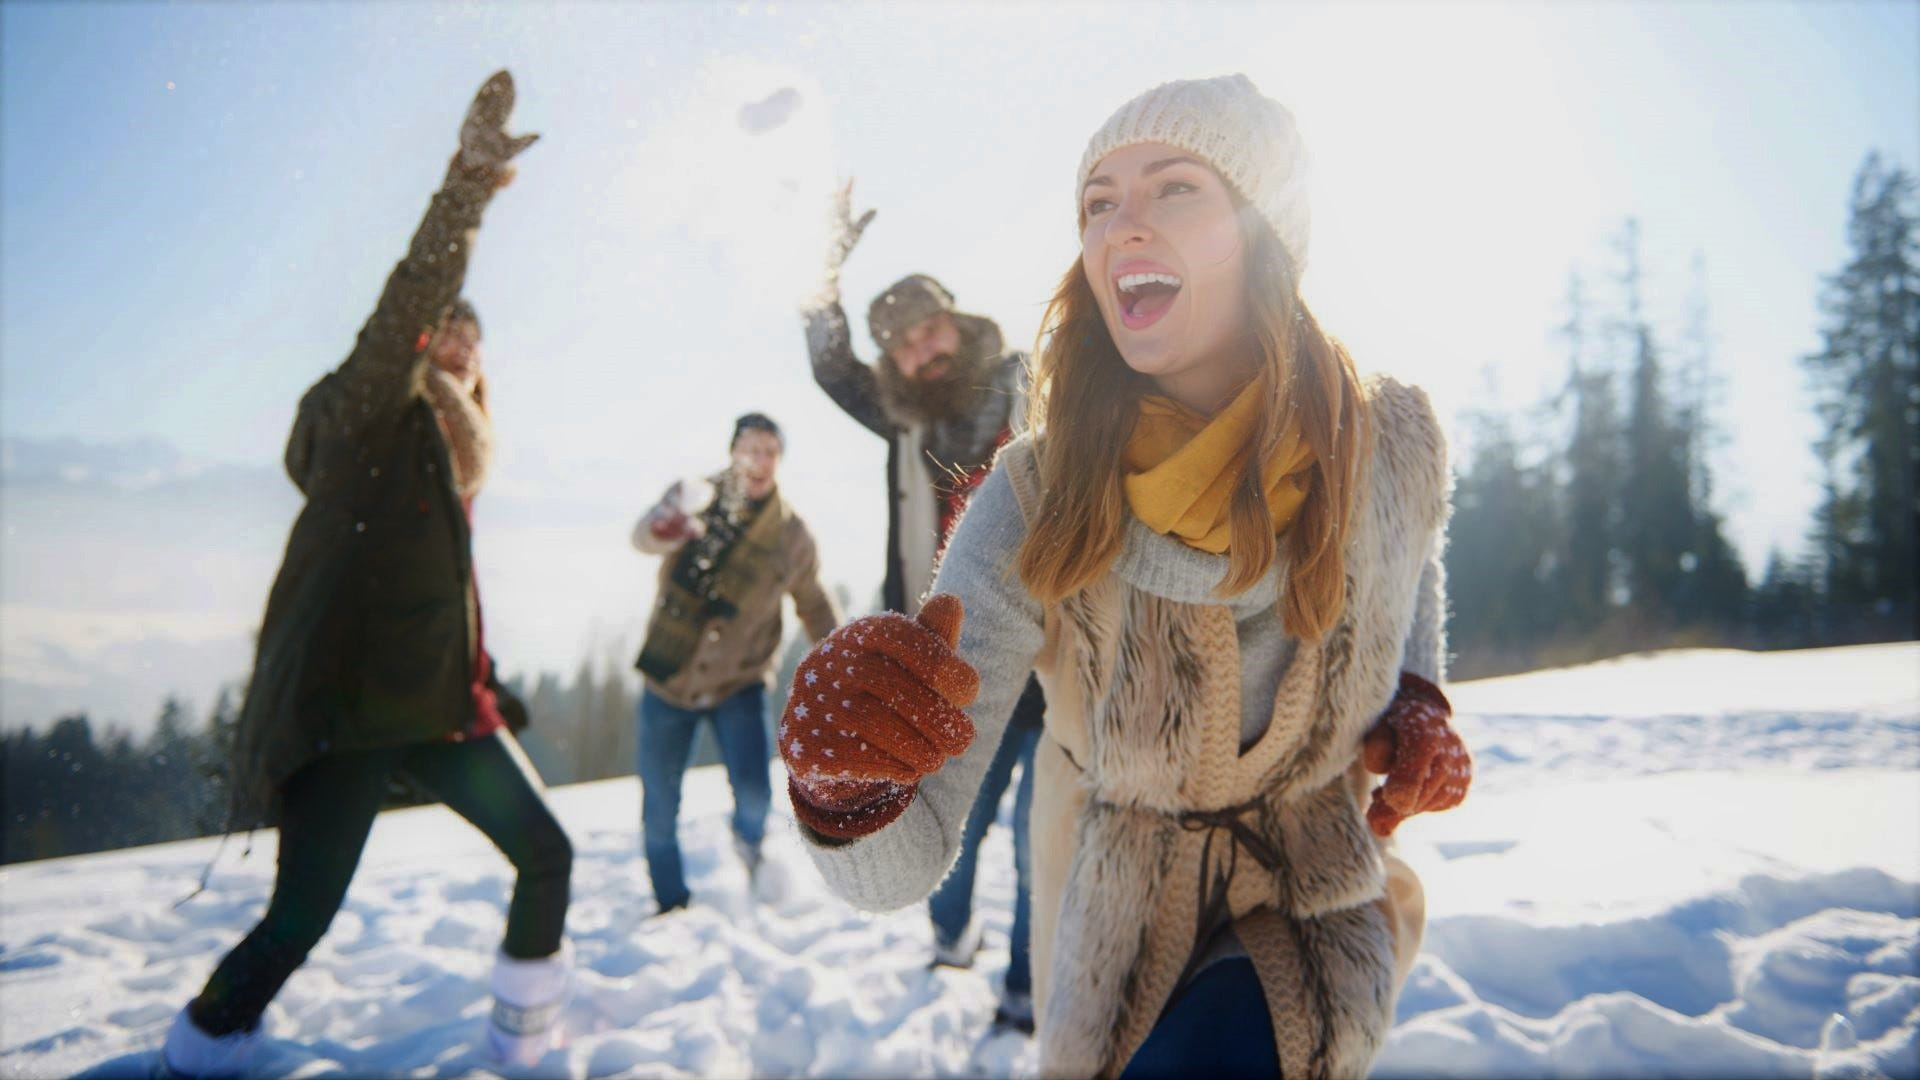 A woman and three men having a snowball fight.